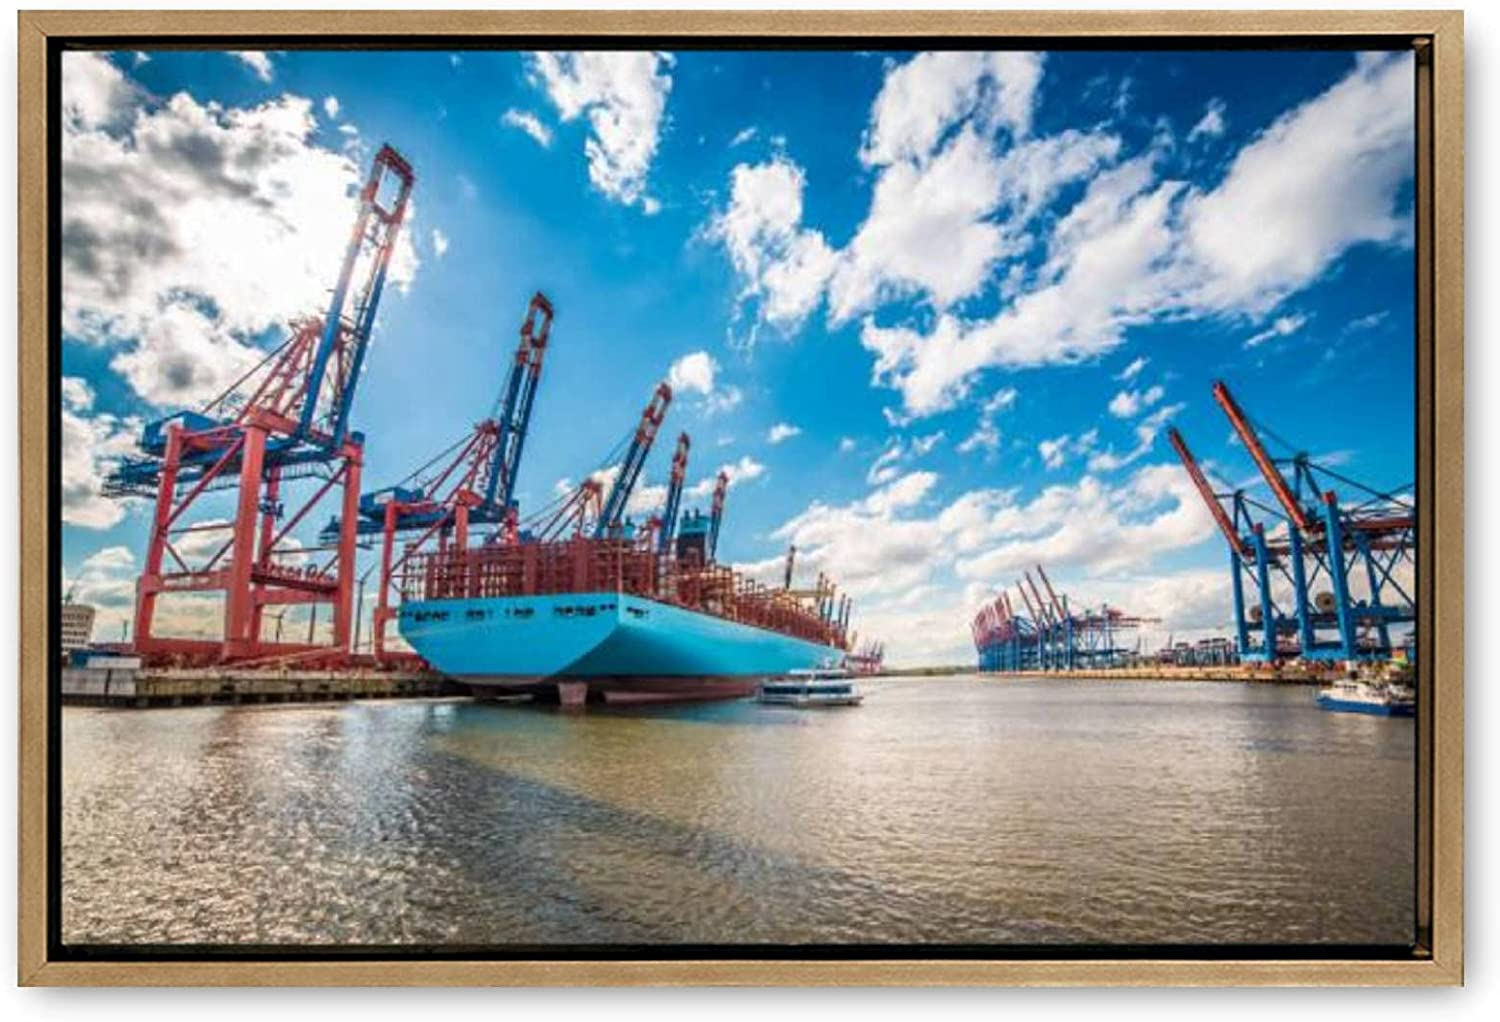 Large Limited time trial price Wooden Framed Canvas Wall Japan's largest assortment Art of Germany Hamburg Canv Port